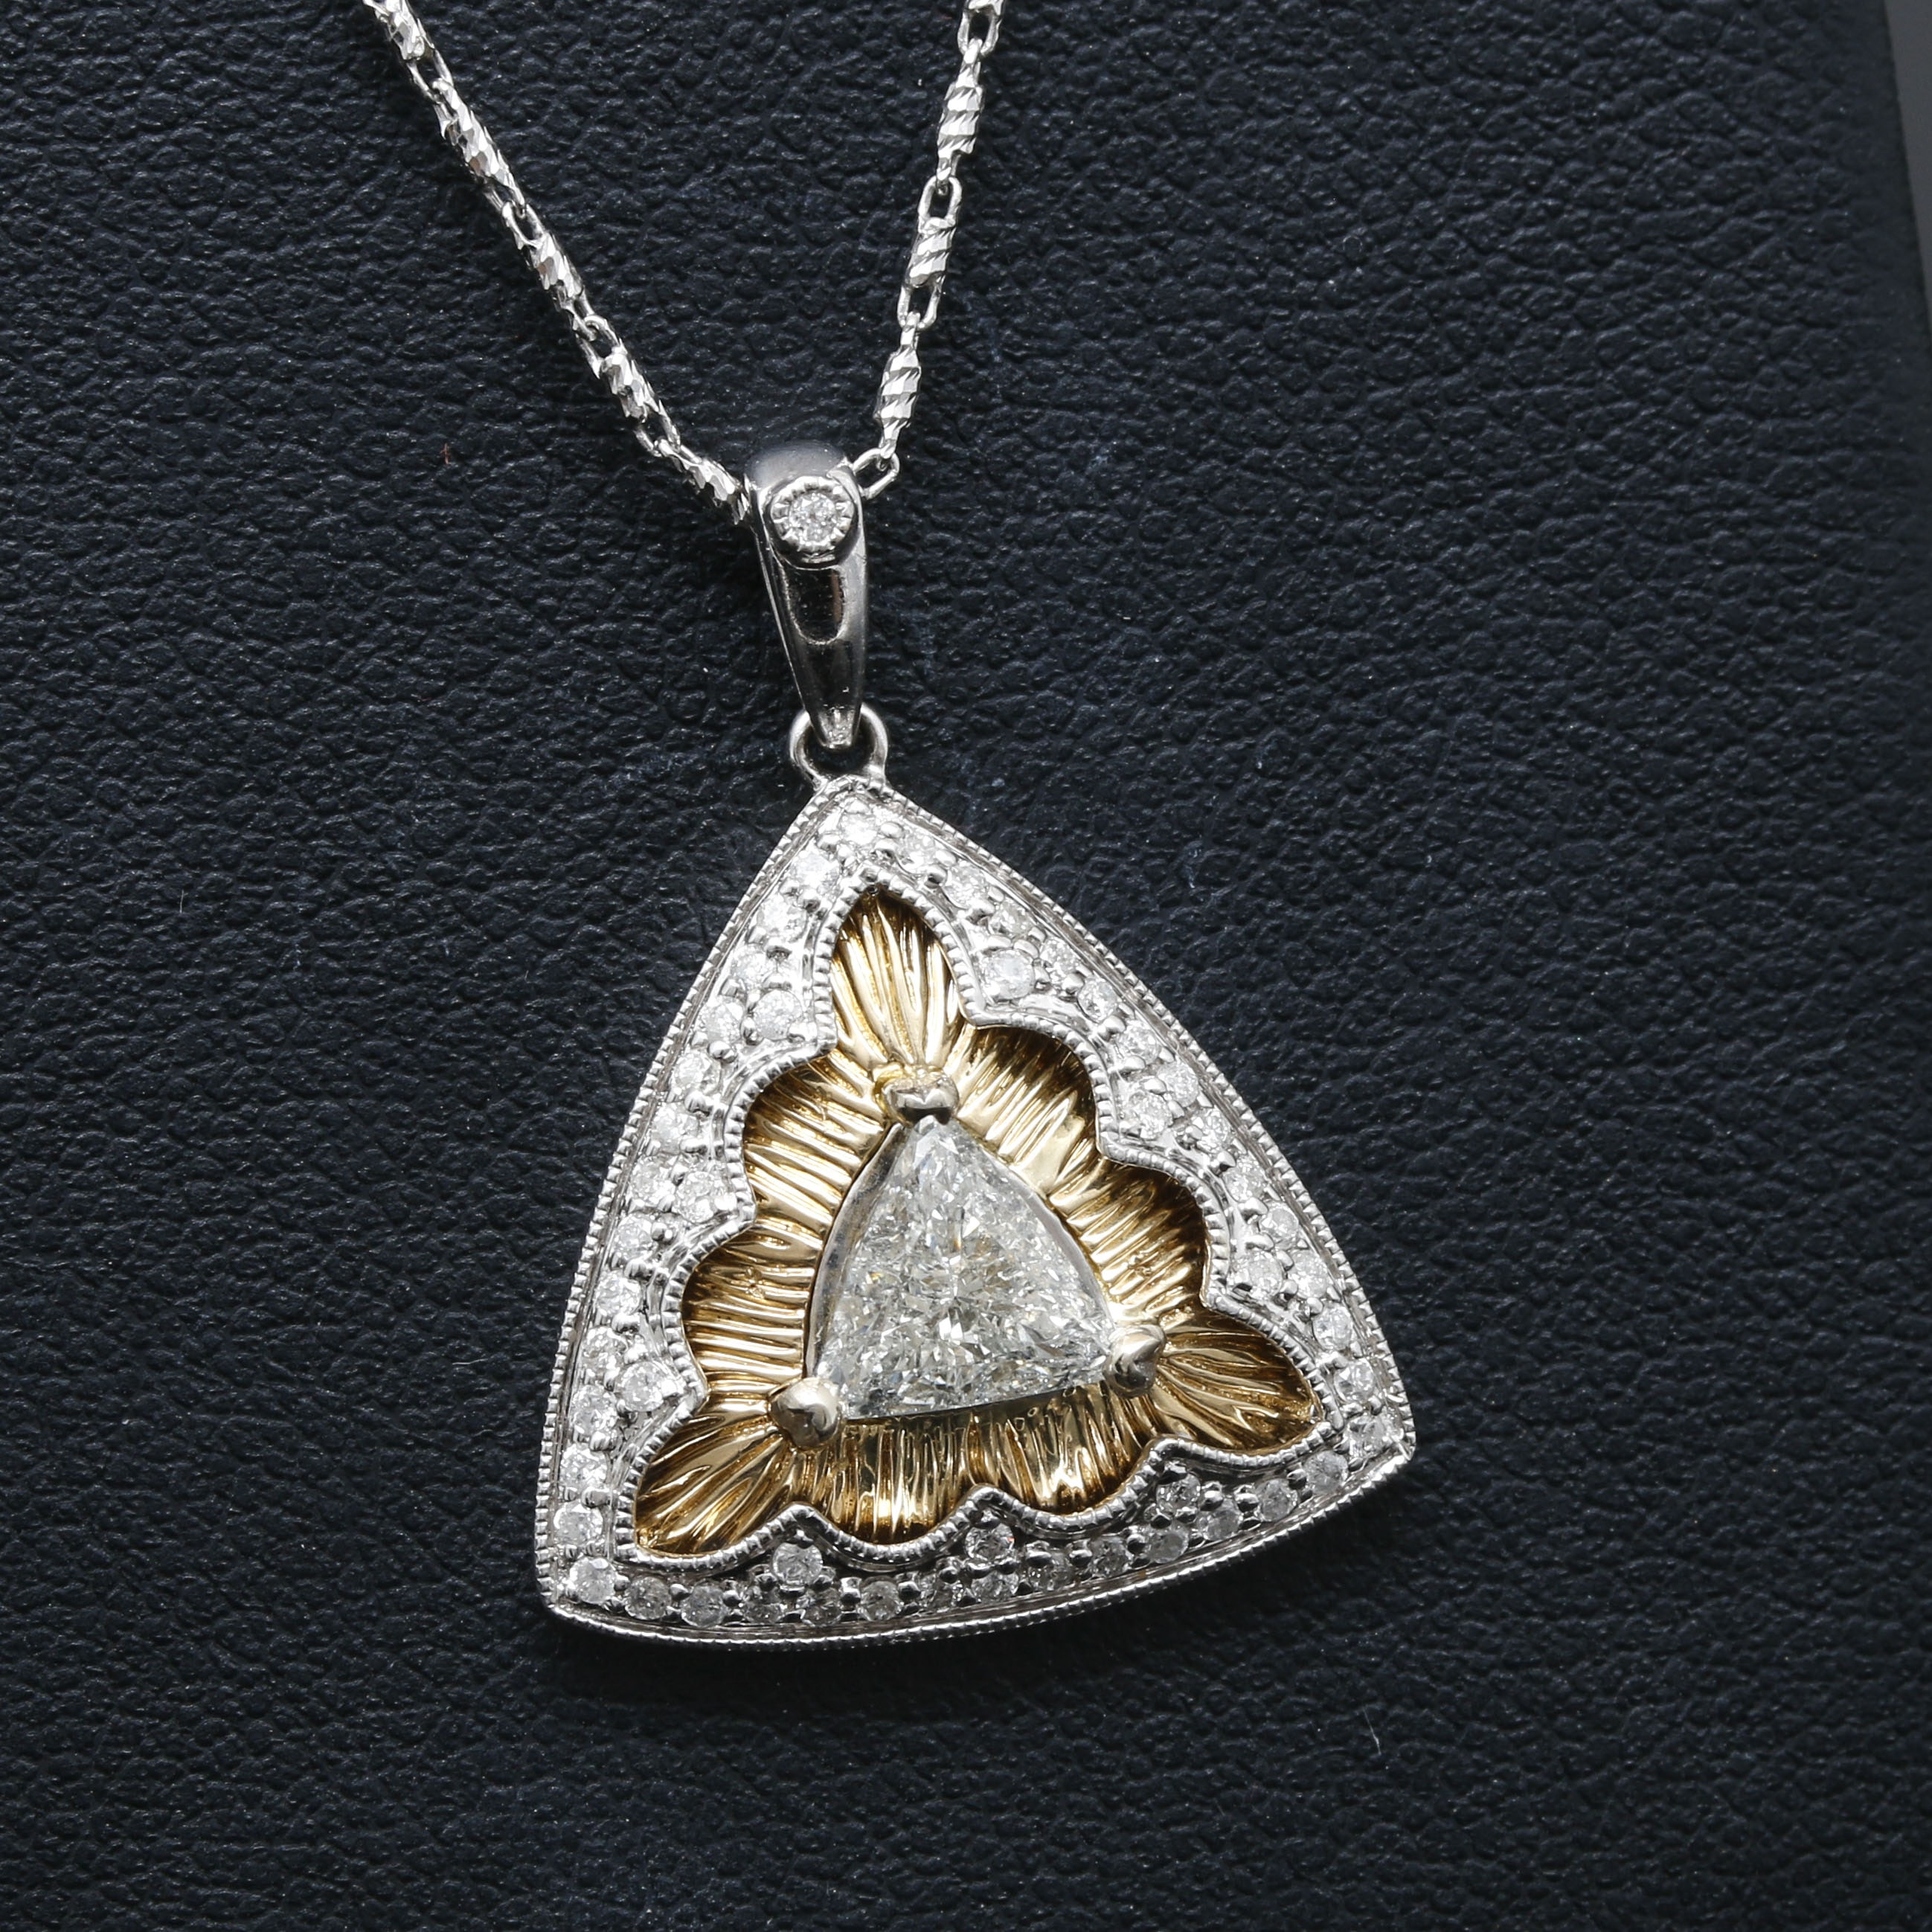 14K White Gold Diamond Pendant Necklace With Yellow Gold Accents